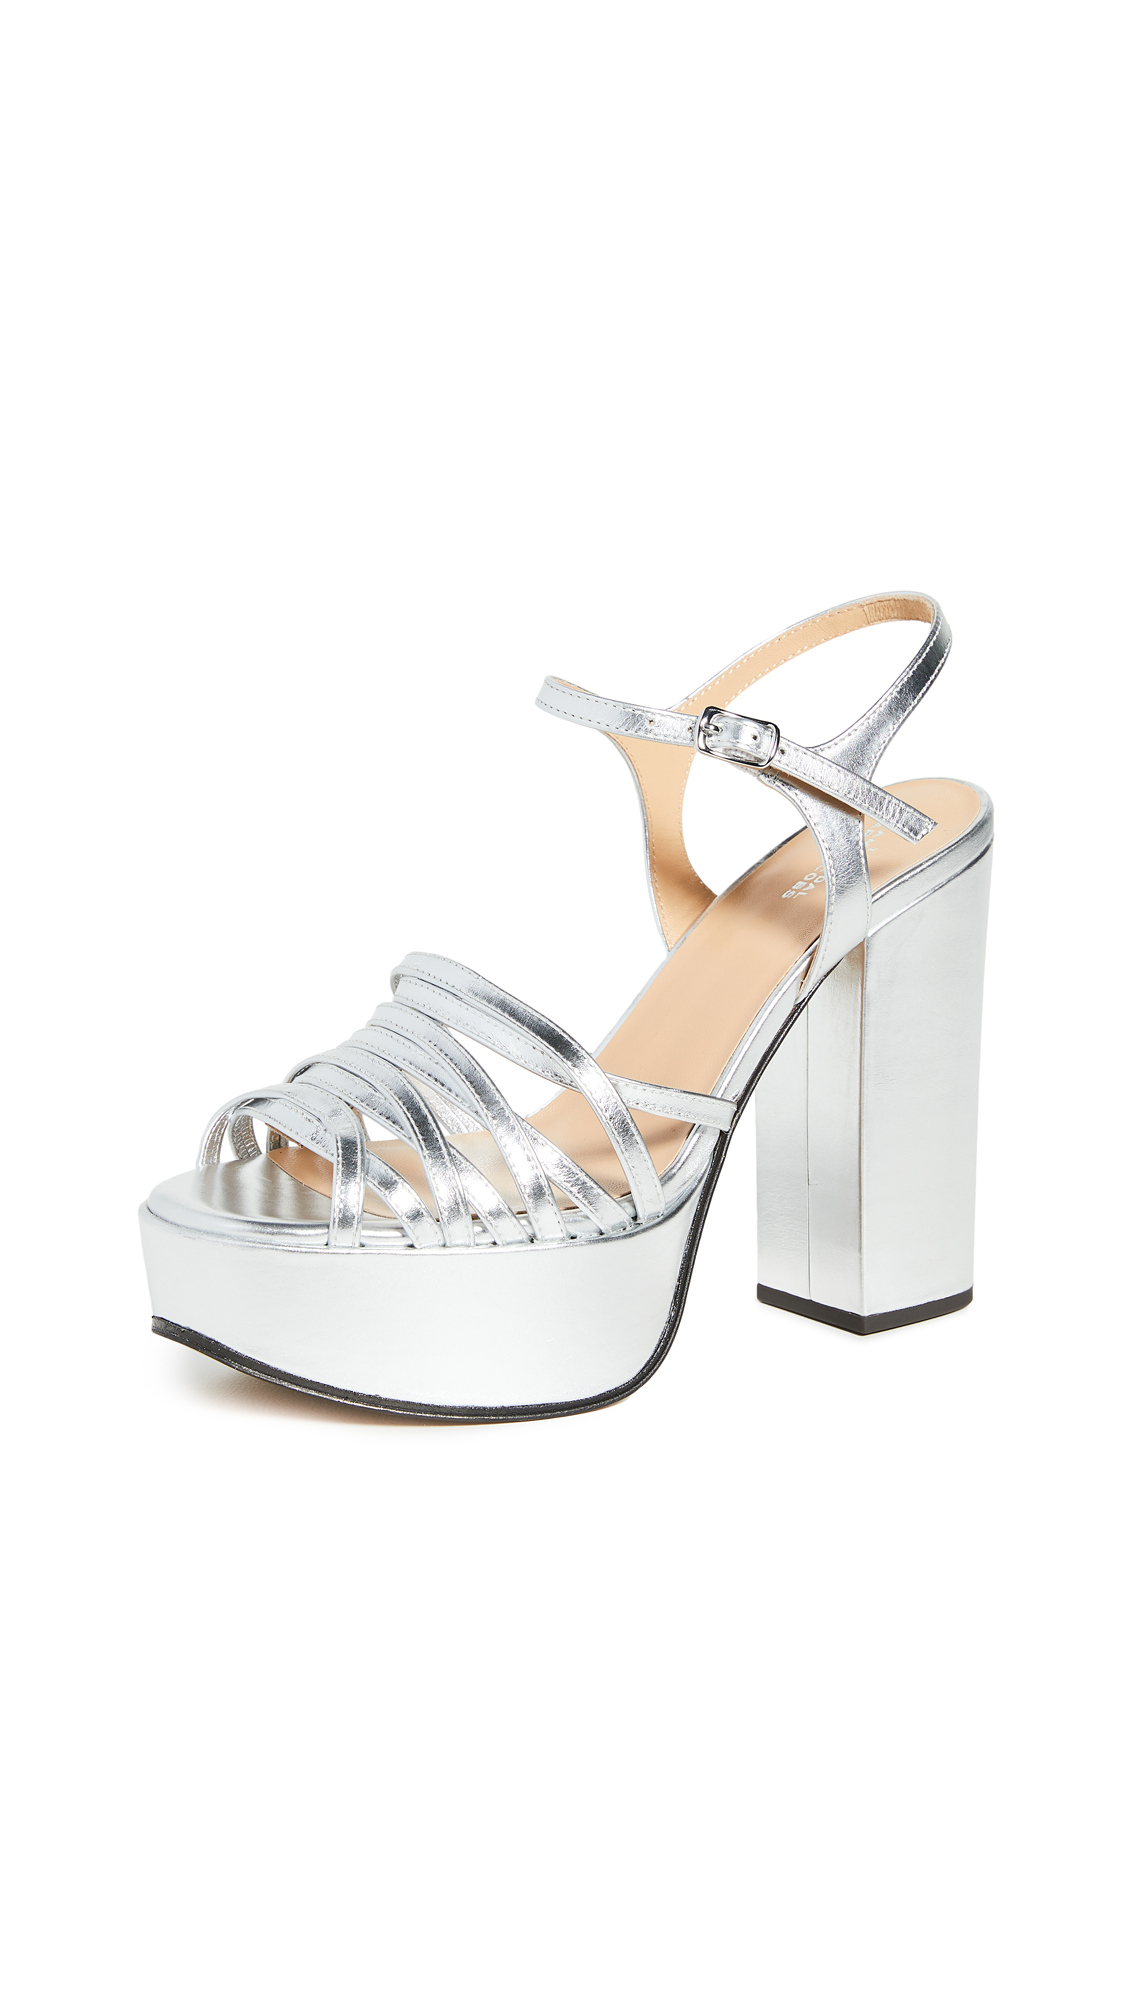 The Marc Jacobs The Glam Sandals – 60% Off Sale